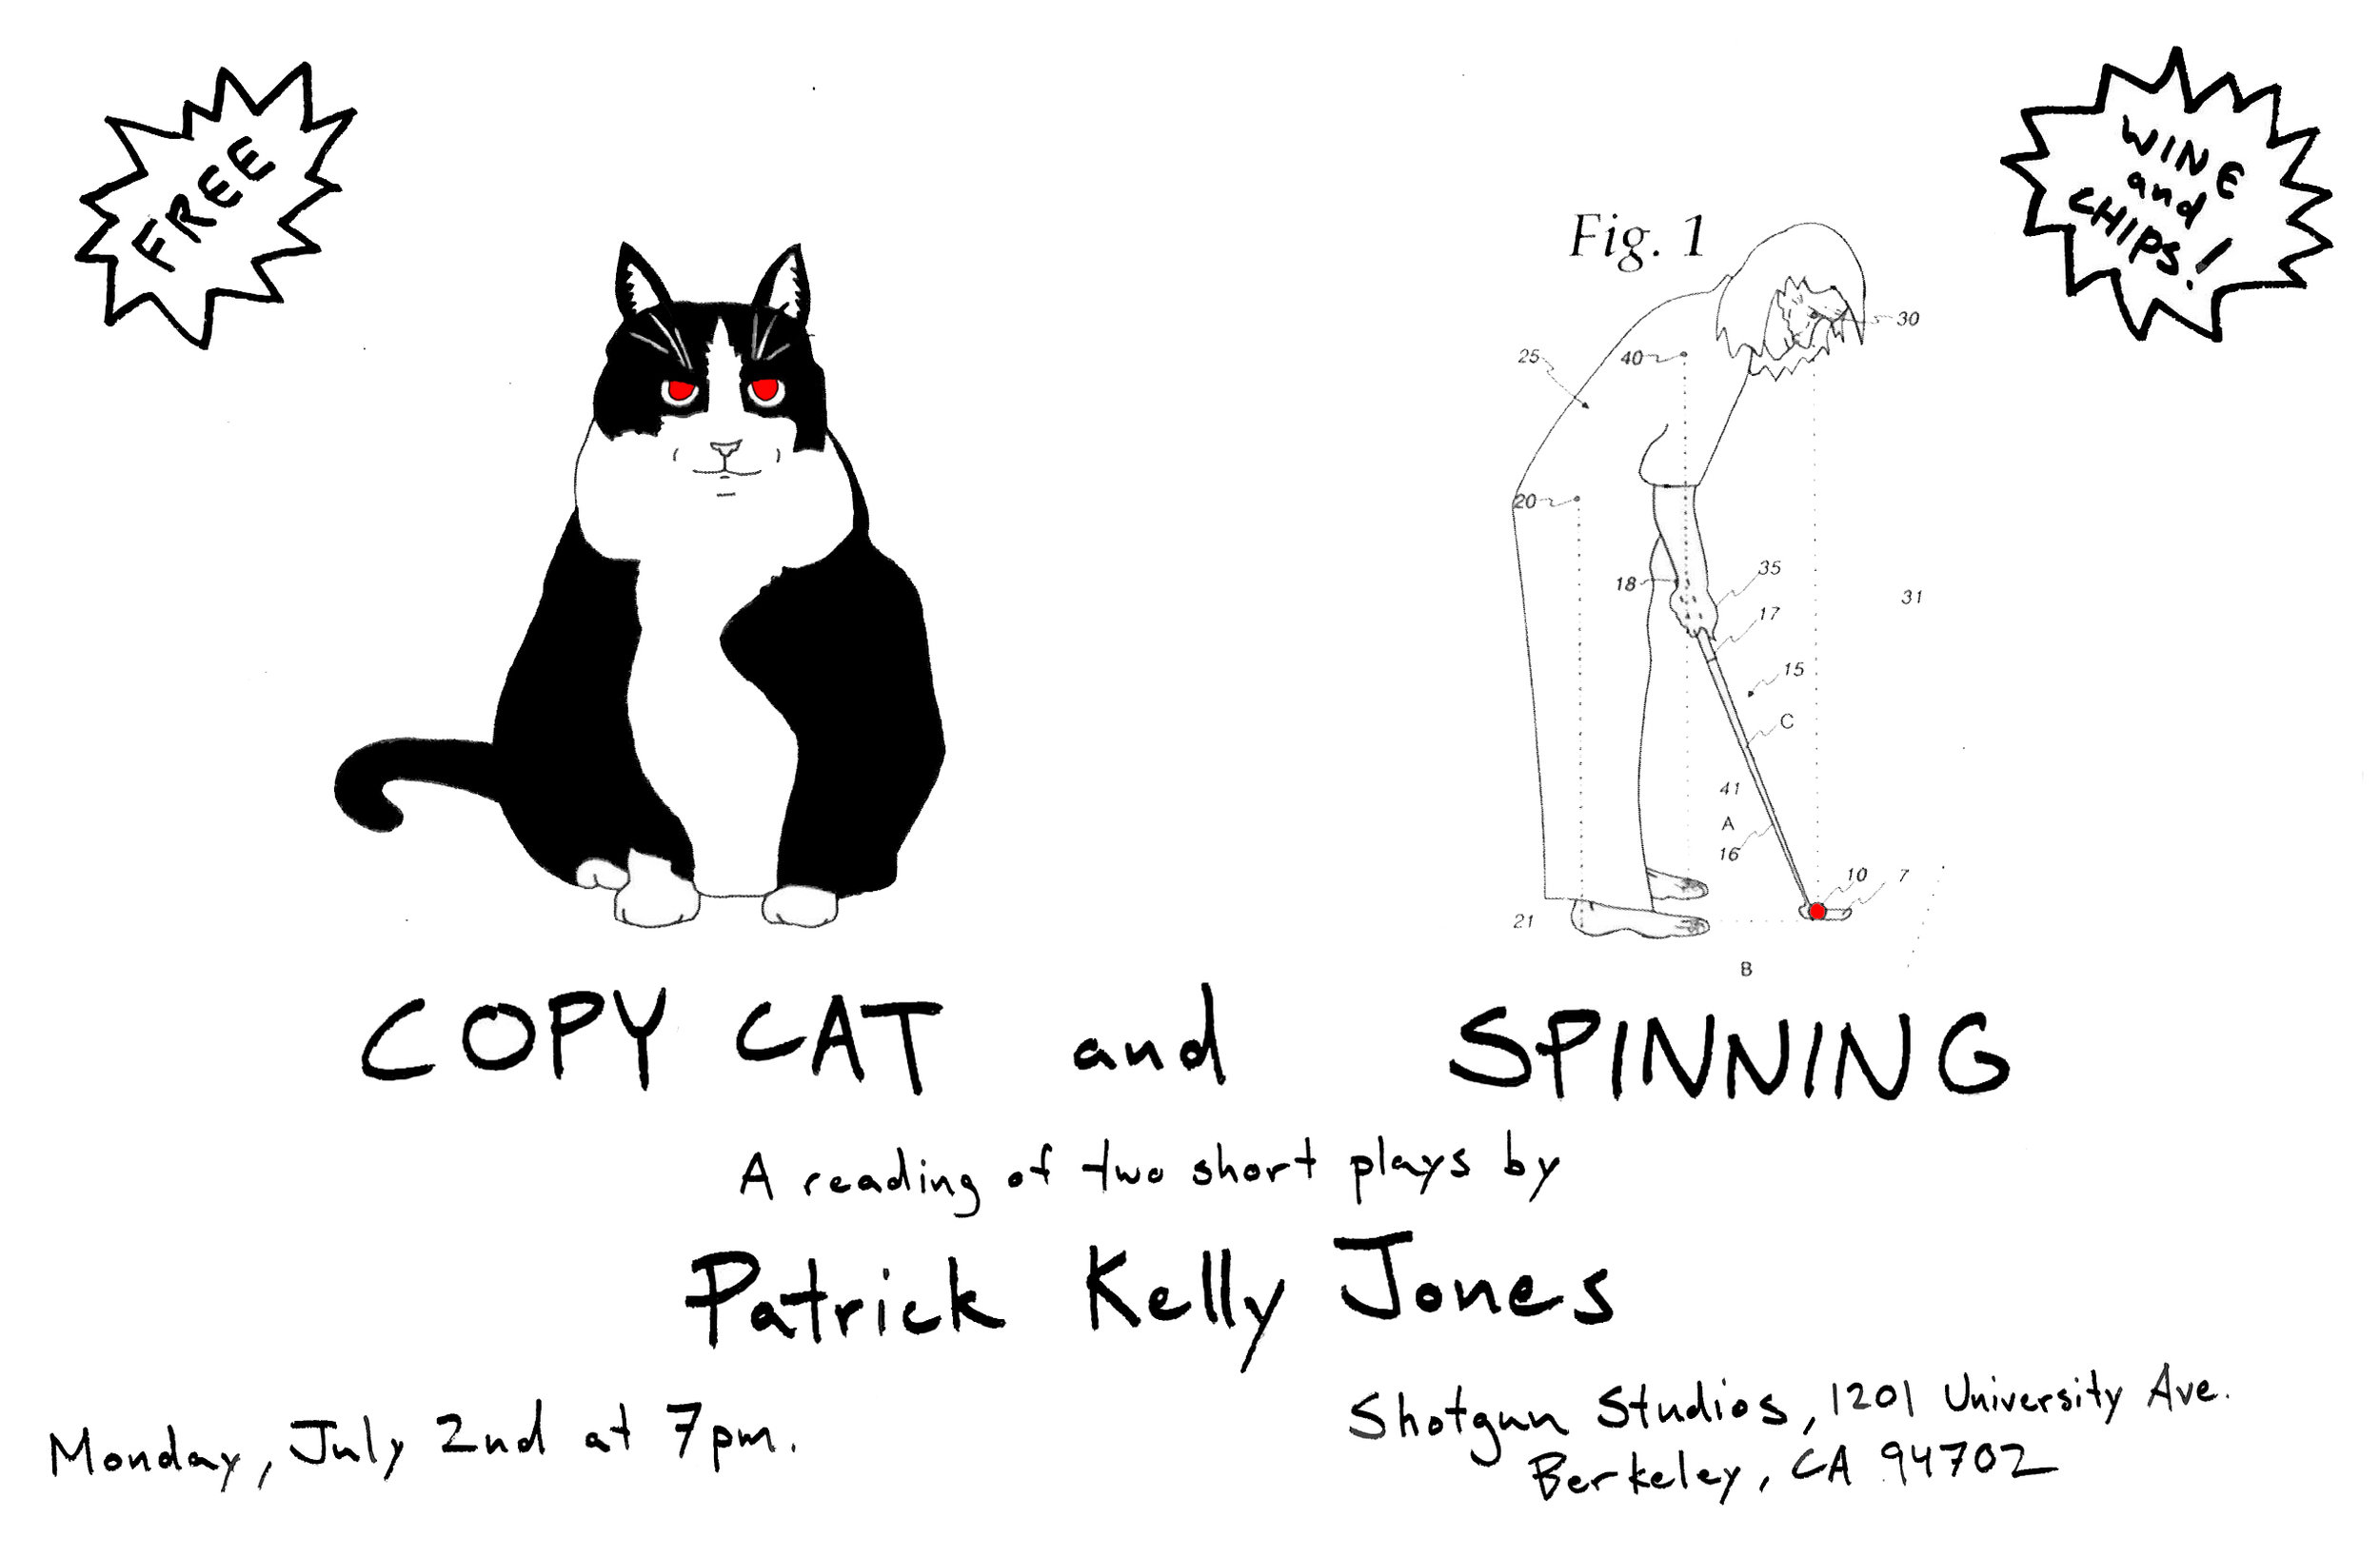 A Staged Reading of Patrick's New Plays - Patrick's new plays, COPY CAT and SPINNING will be read by professional actors at the Shotgun Studios at 1201 University Ave. in Berkeley, CA on Monday July 2nd, 2018 at 7pm. Admission is free. Wine and chips will be served. Feel free to message Patrick with any questions about the event. Just click on CONTACT in the header above.